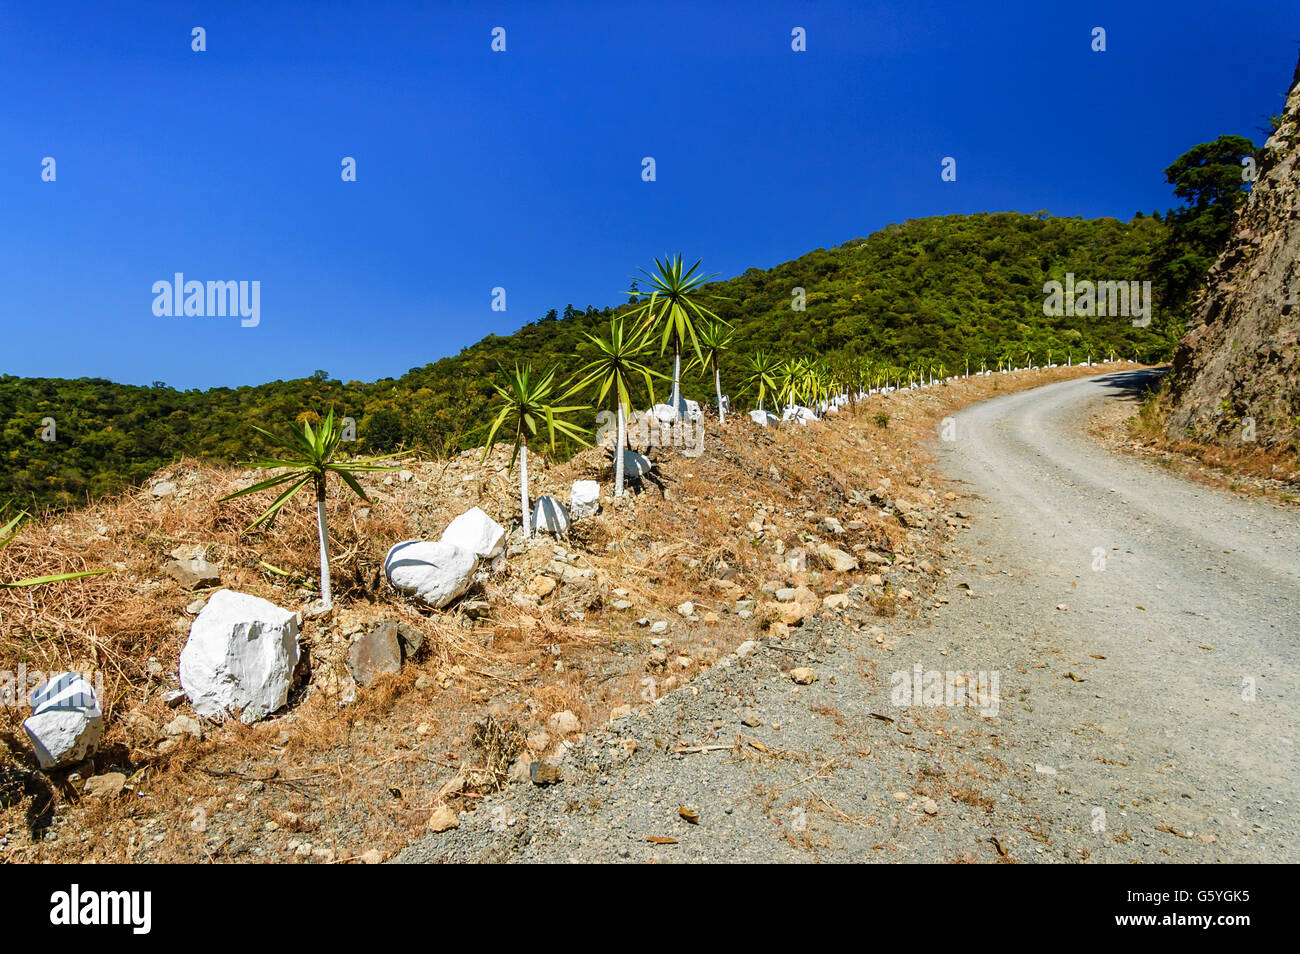 Winding dirt road, in highlands of Guatemala - Stock Image